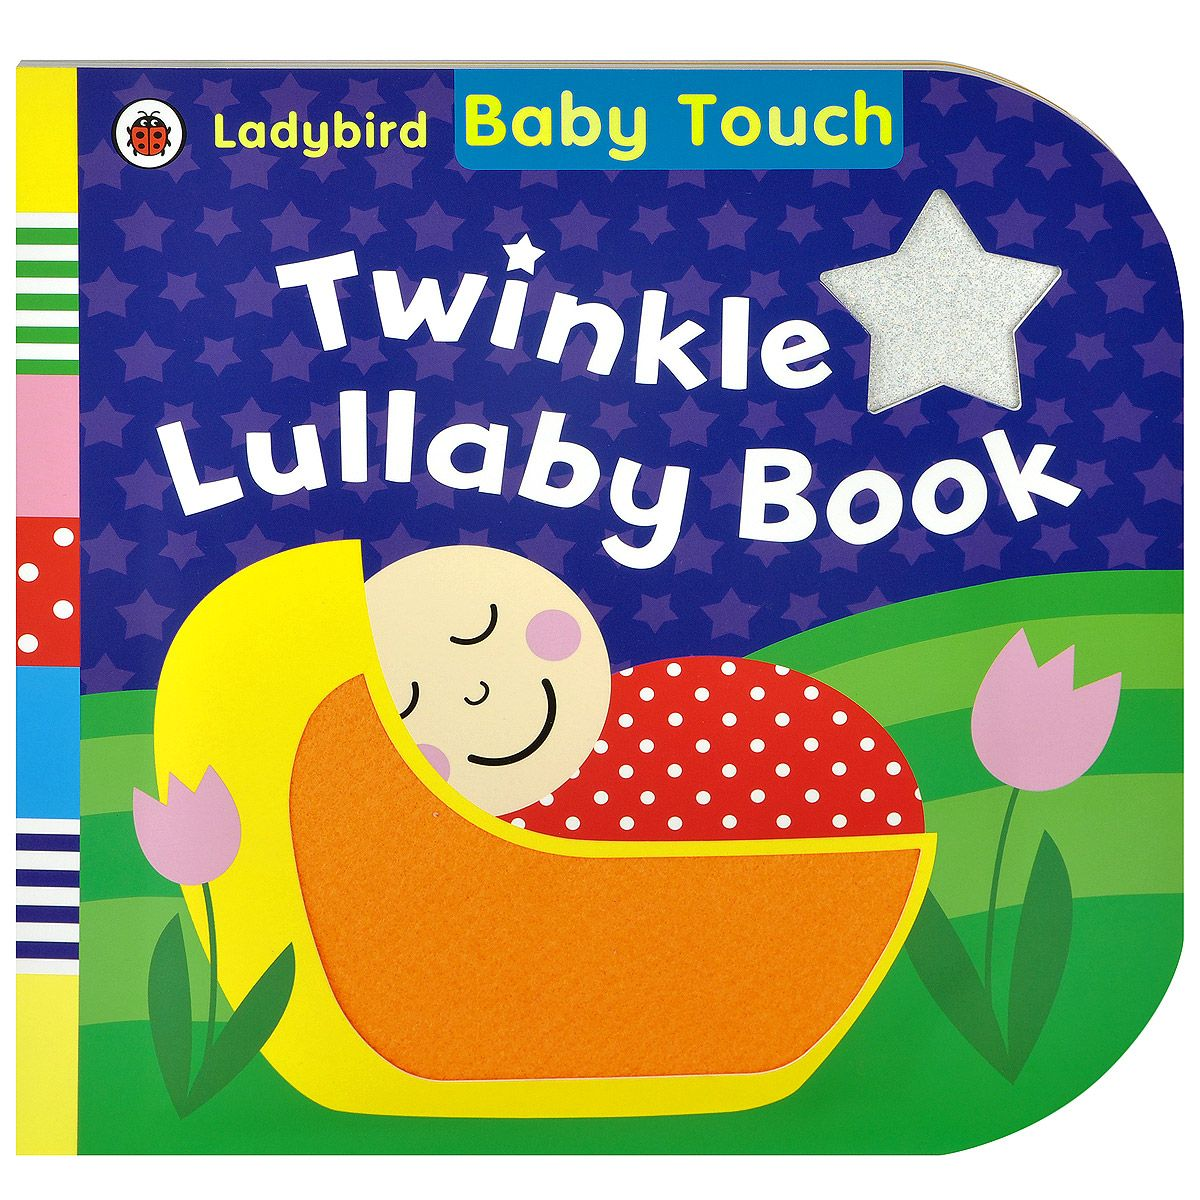 Rock a Bye Baby - Baby Lullaby - Nursery Rhymes - Baby Sleep Music Twinkle Twinkle Little Star, Baby Sleep Music, Baby Lullaby